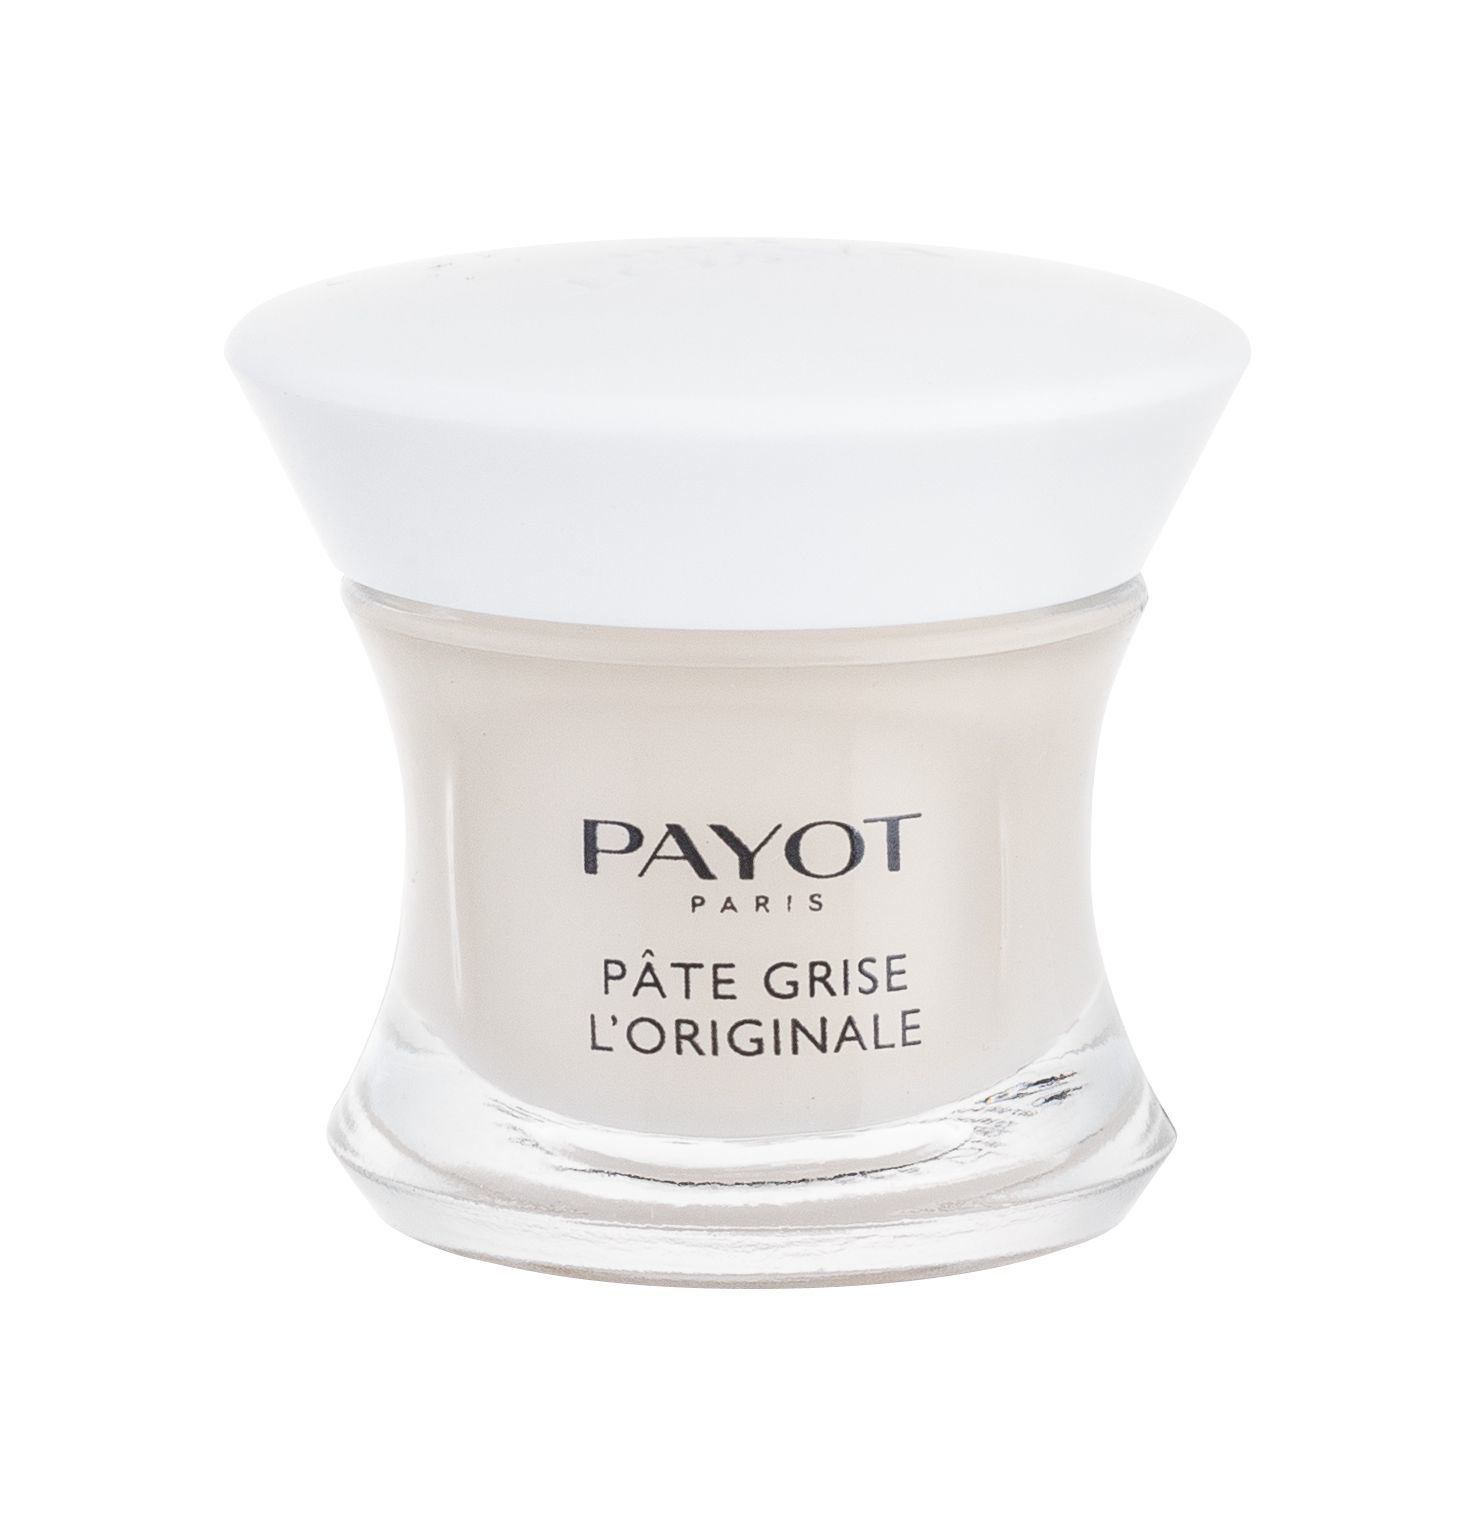 PAYOT Pate Grise Night Skin Cream 15ml